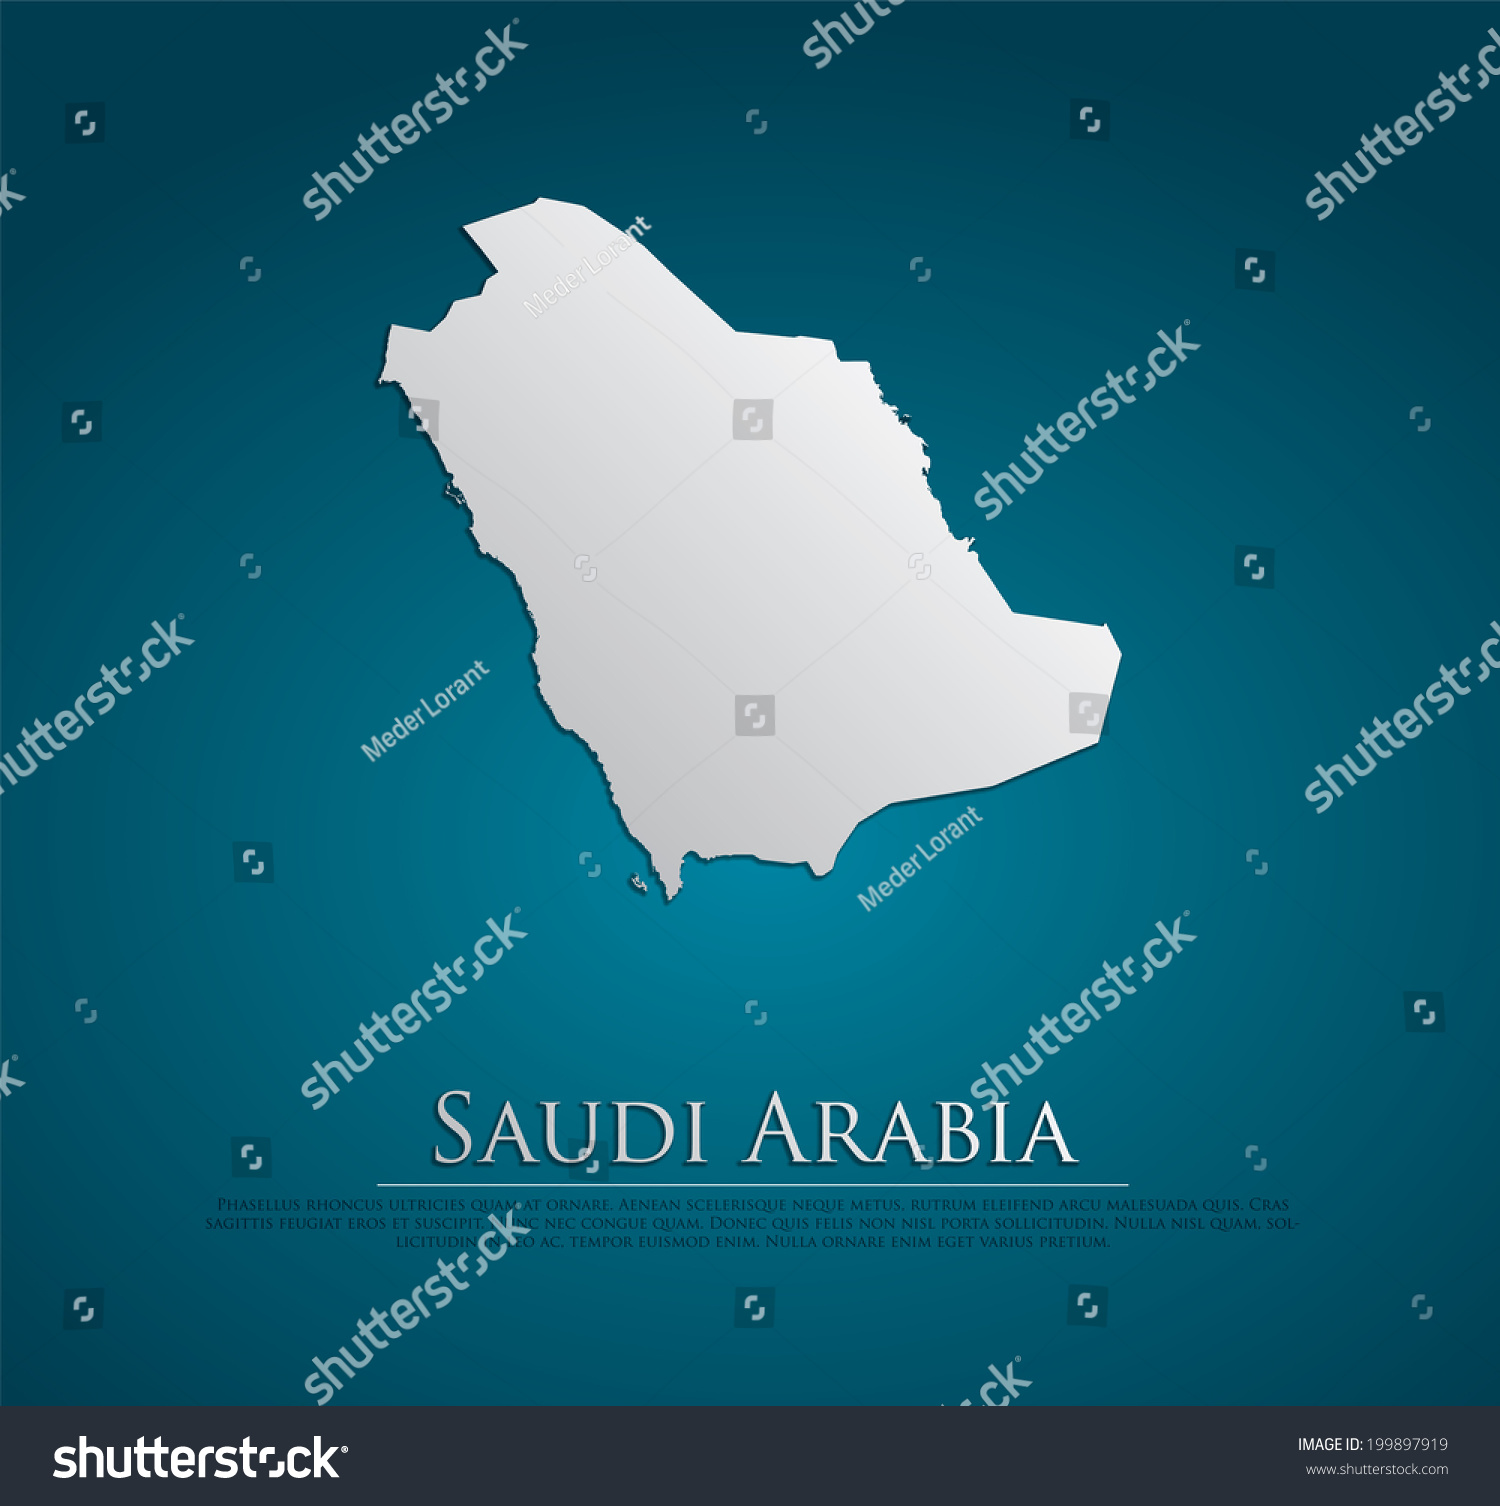 saudi english paper This study investigated saudi english-major undergraduates and english teachers of taif university to determine the factors that hinder effective elt in saudi universities and sought their suggestions to improve the situation.